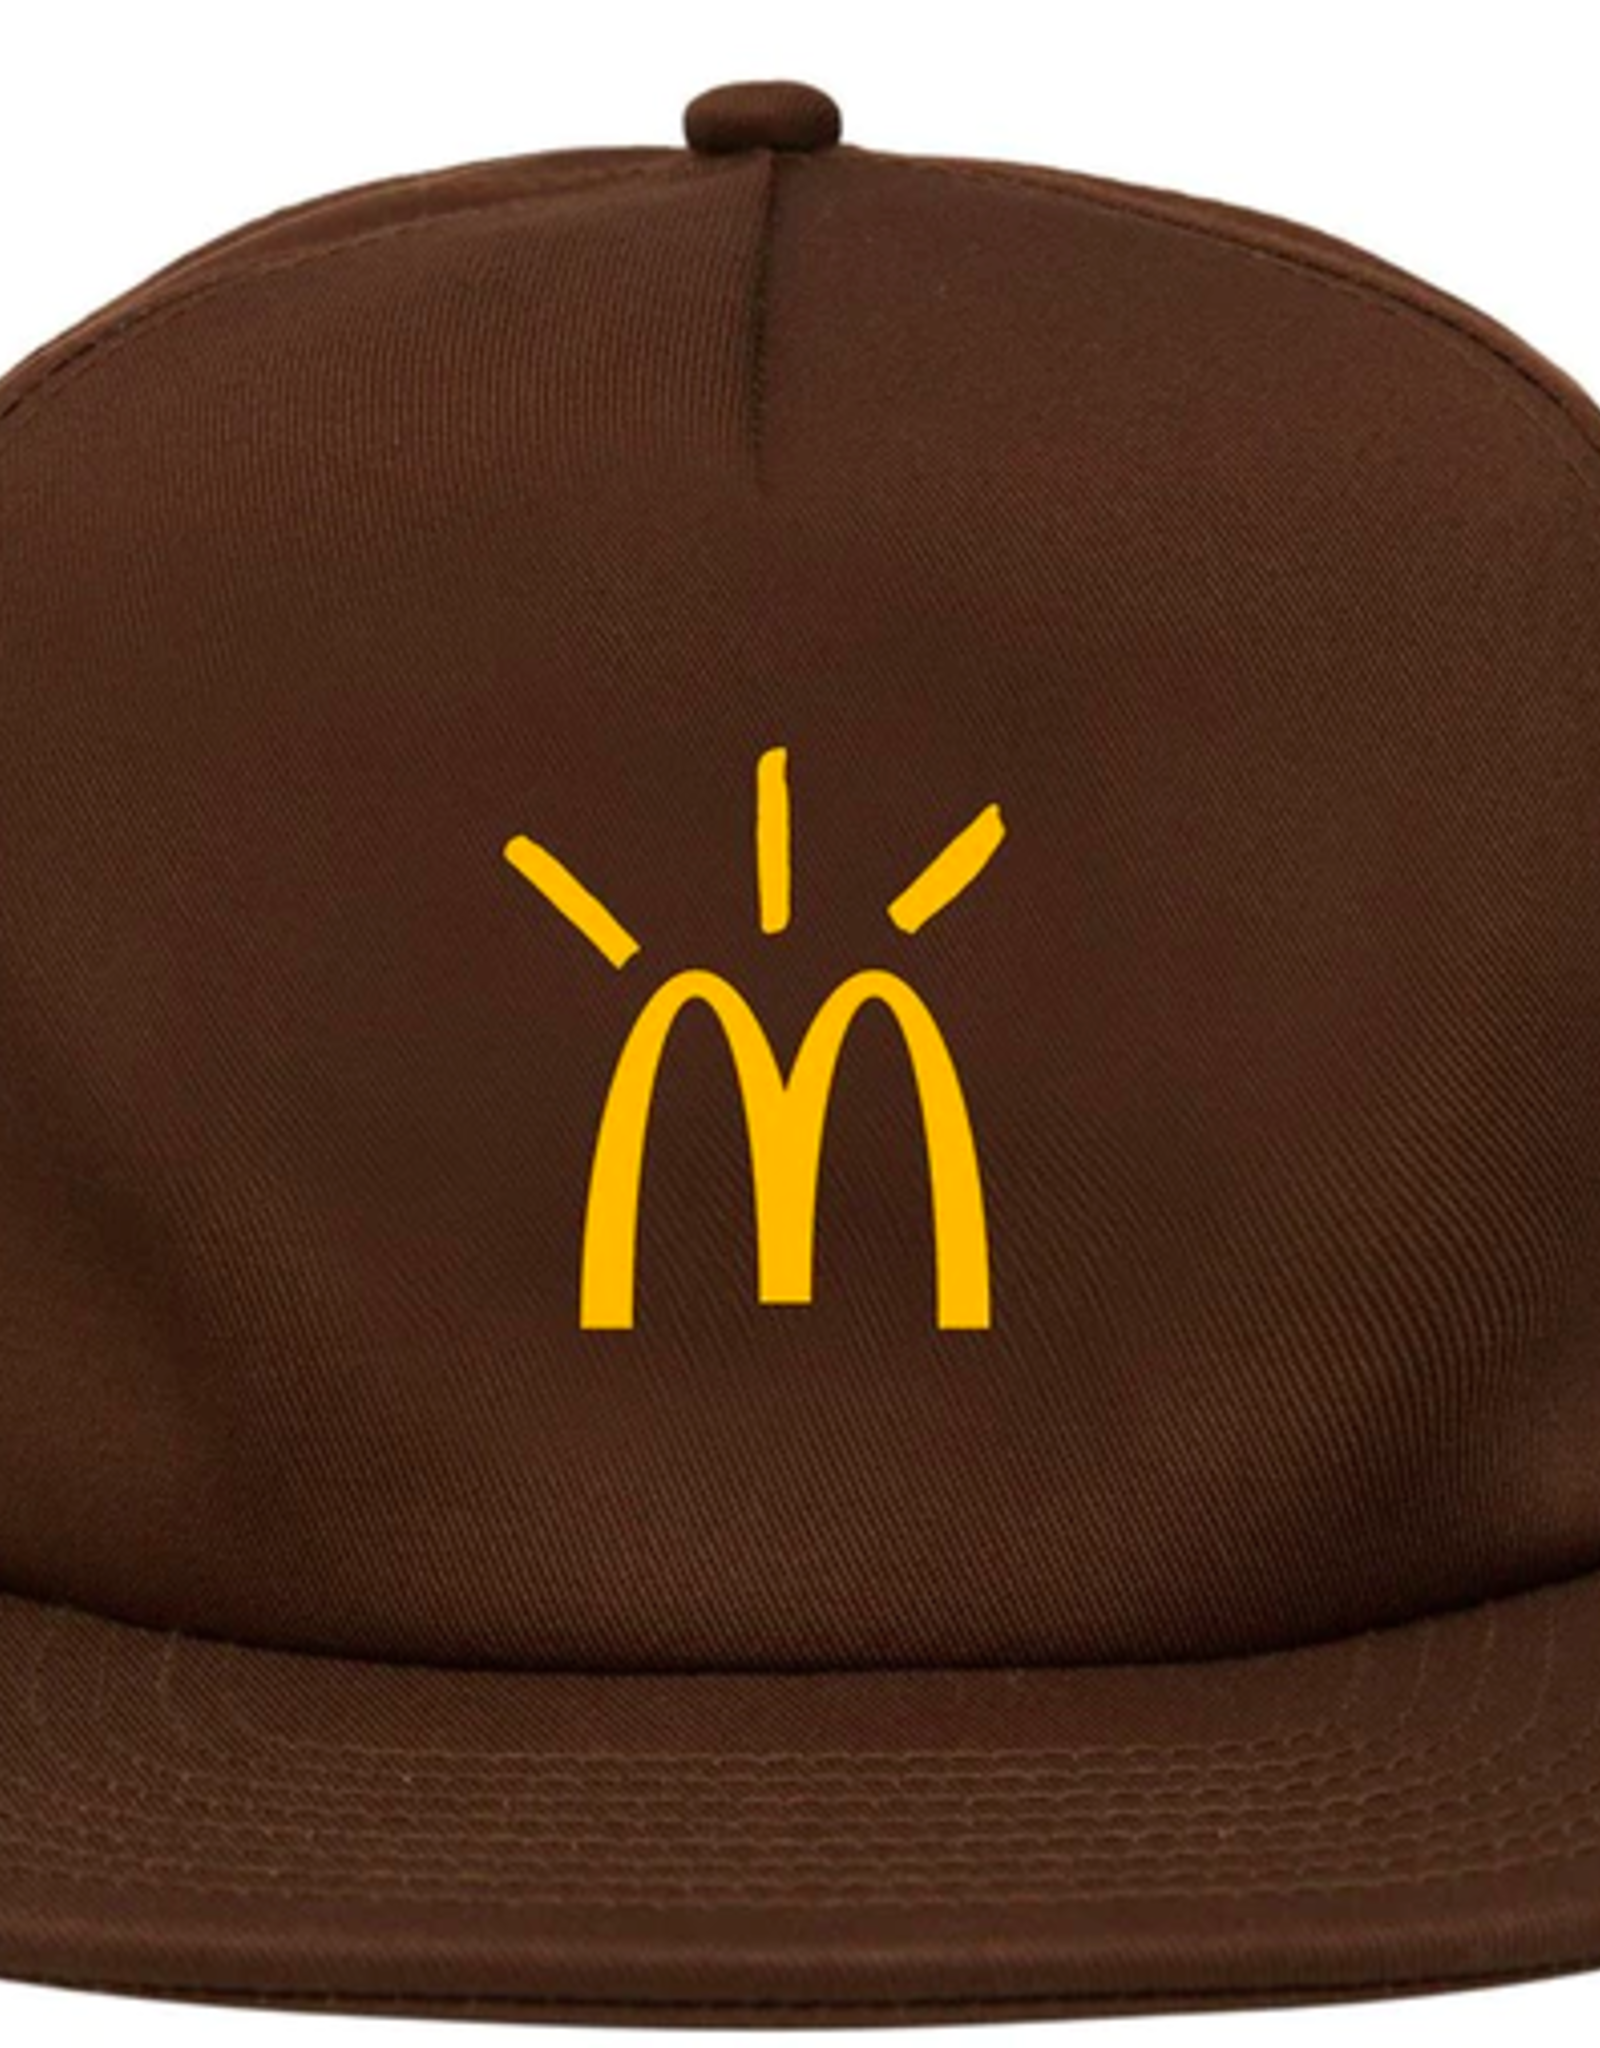 TRAVIS SCOTT Travis Scott x McDonald's Cactus Arches Hat Brown